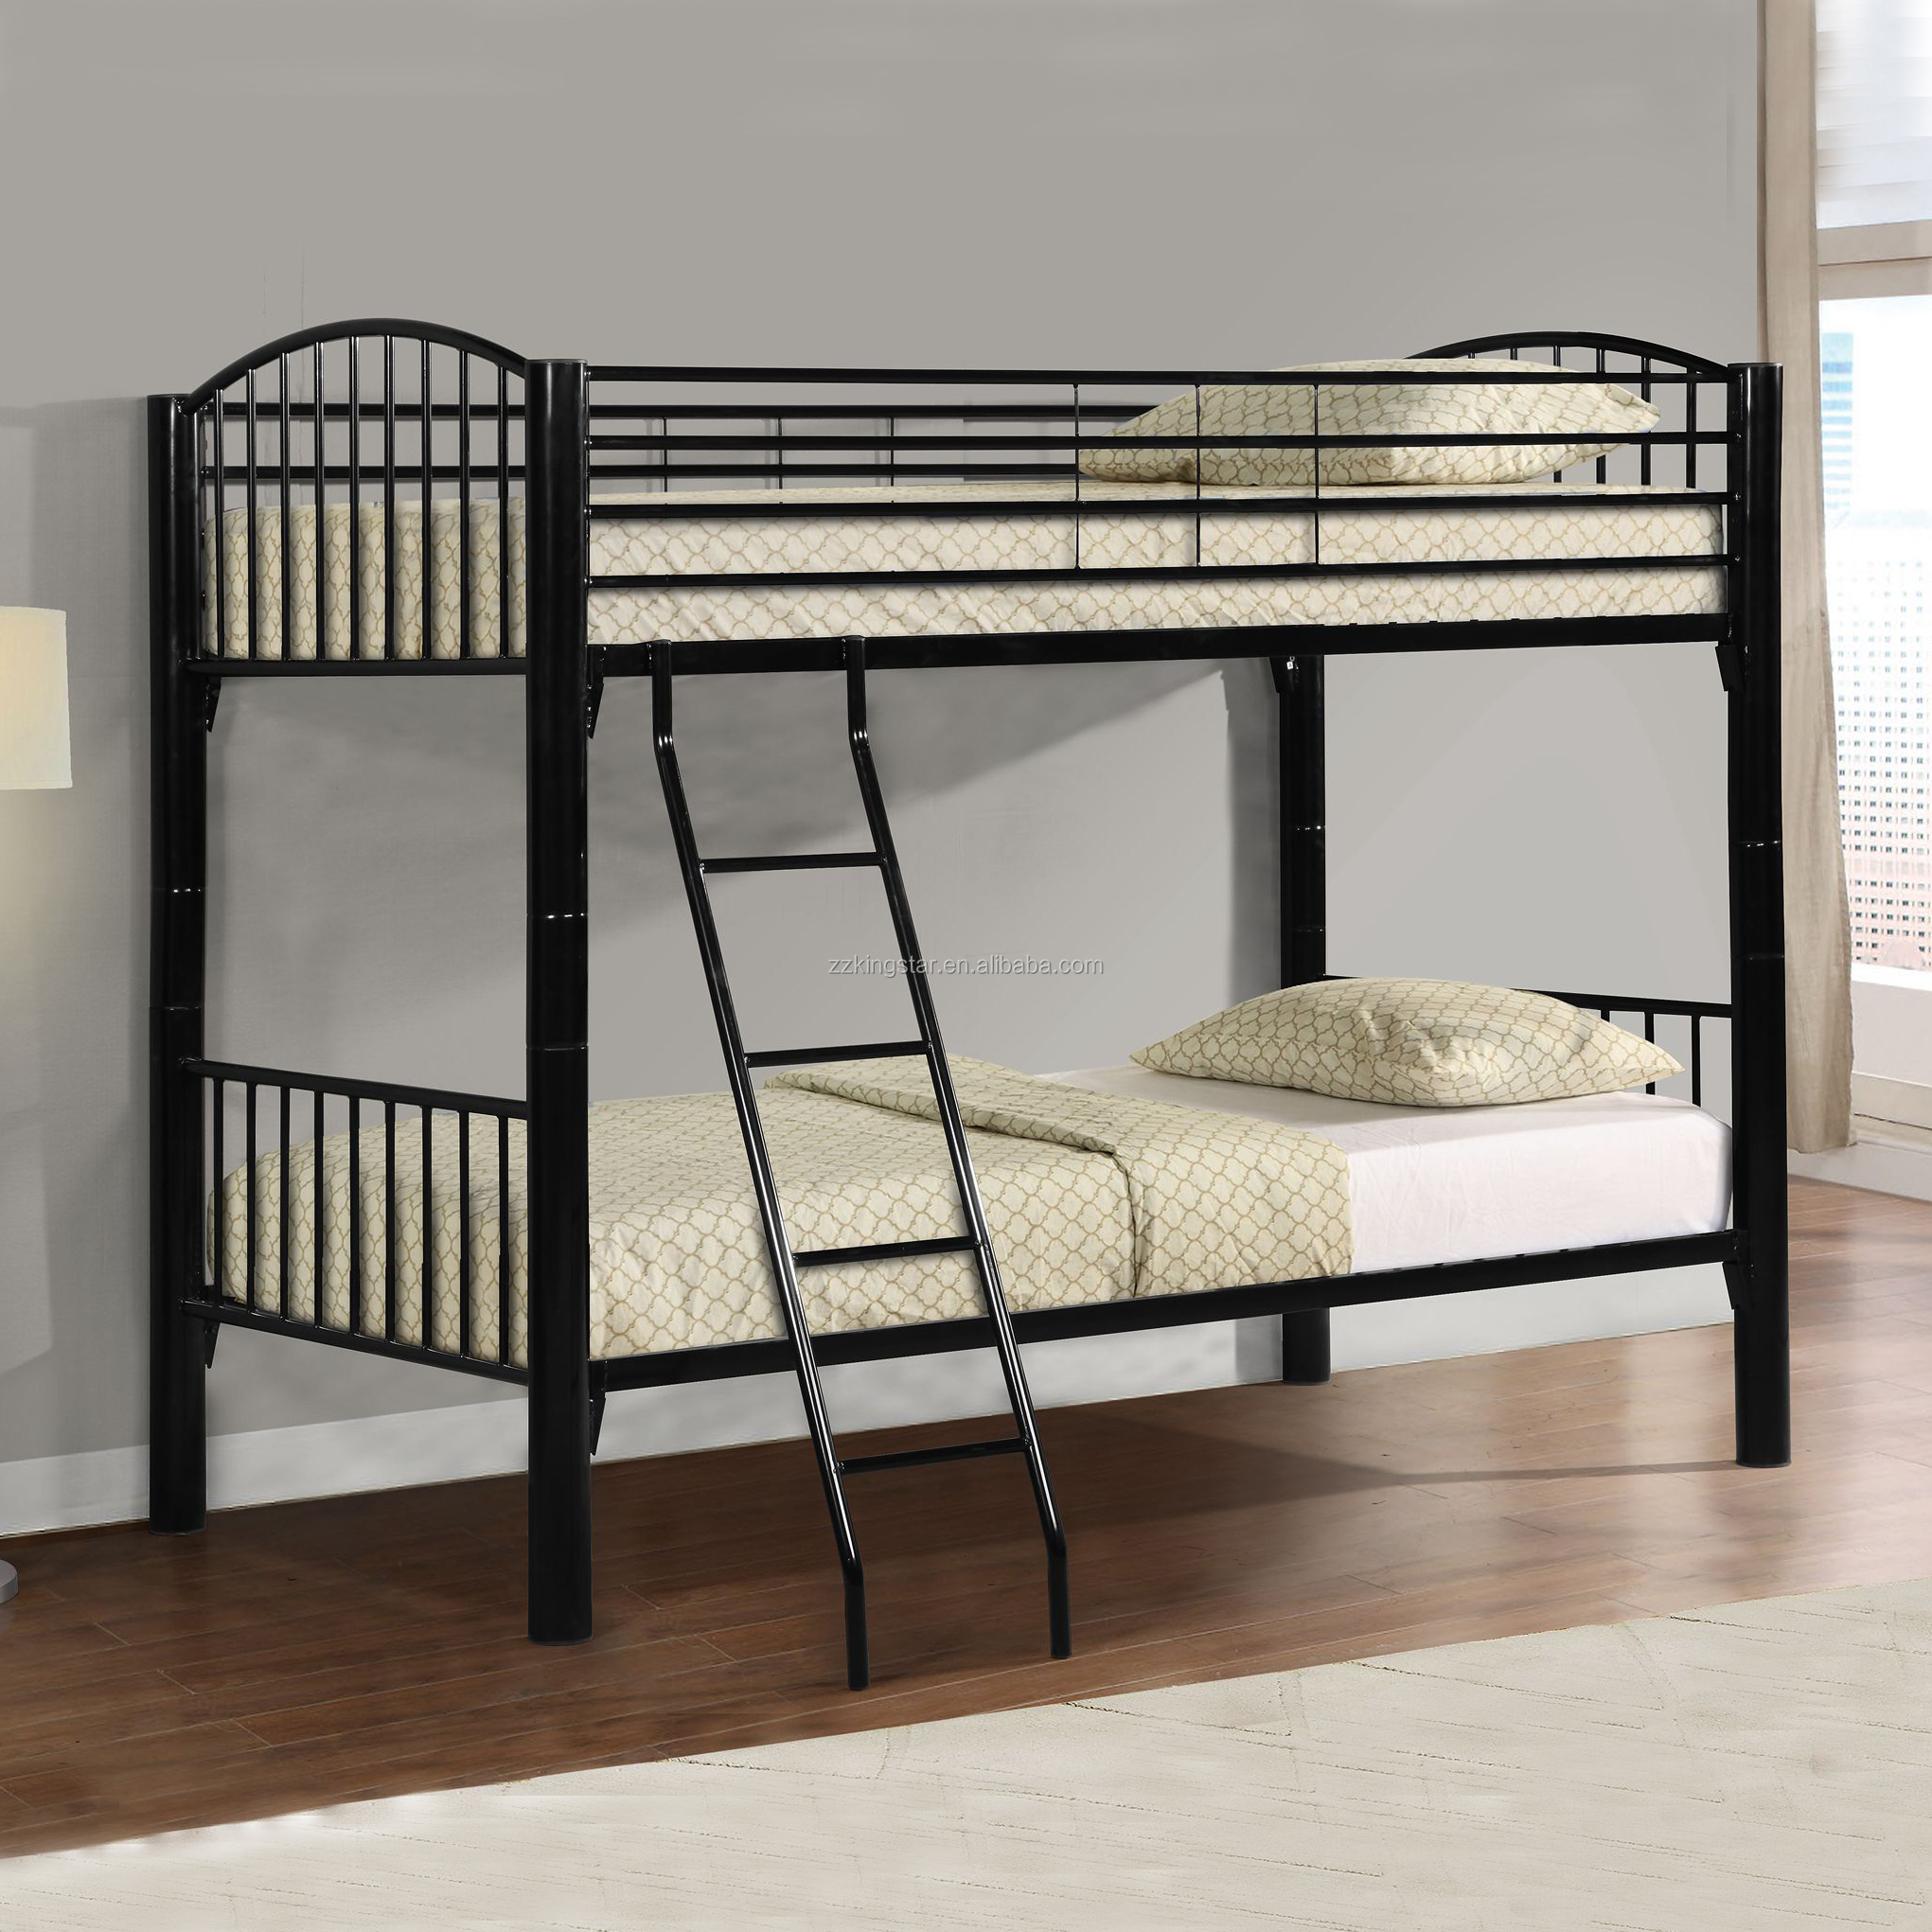 Picture of: Black Metal Pipe Steel Tube Bunk Bed Frames Manufacturer Buy Metal Pipe Bunk Bed Frames Metal Tube Bed Frame Steel Bunk Bed Frames Product On Alibaba Com